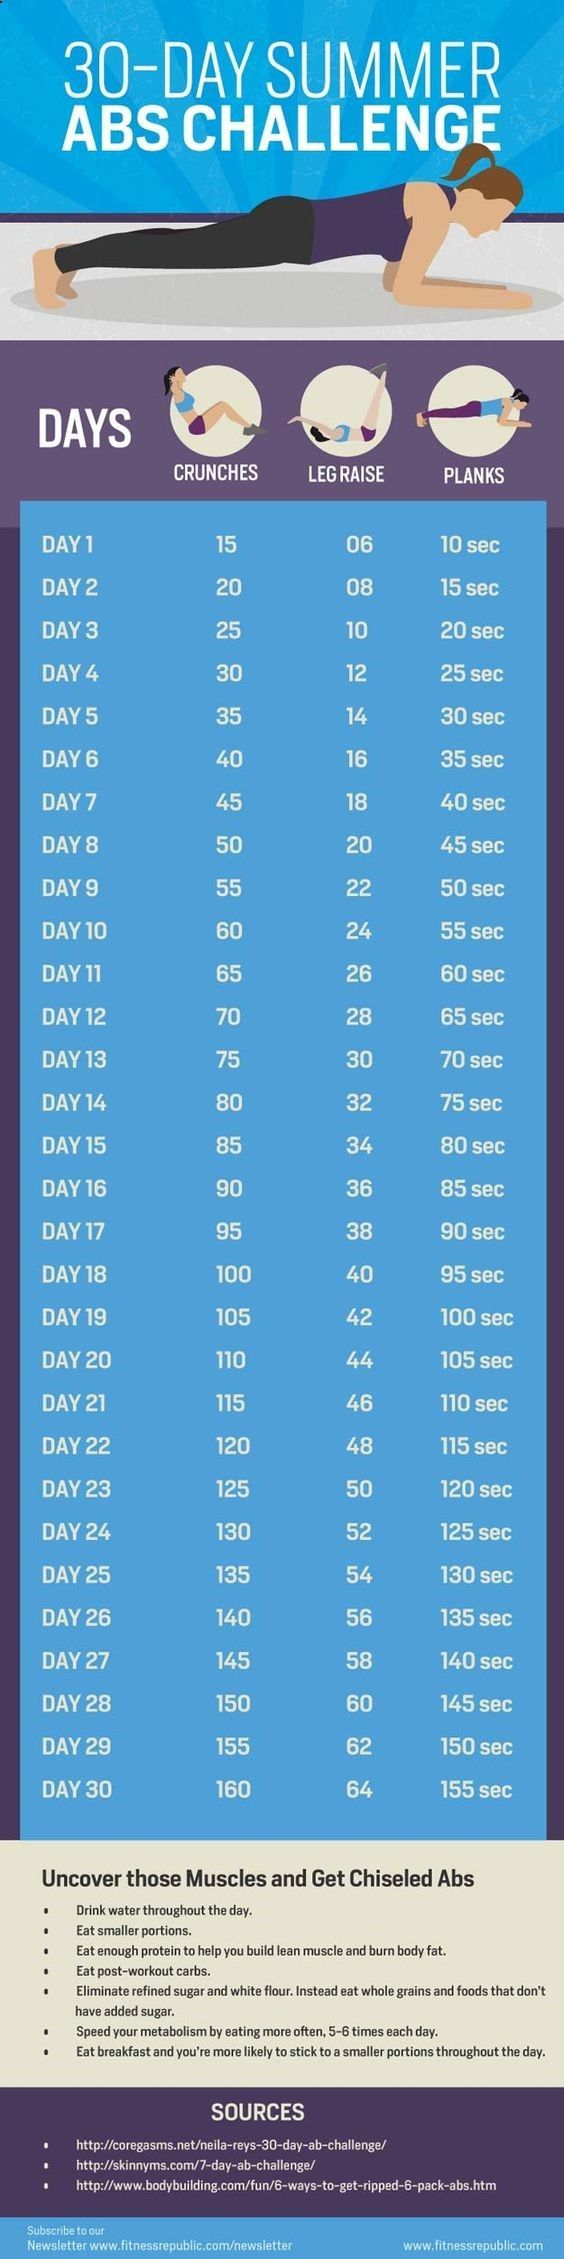 Best Exercises for Abs - 30-Day Summer Abs Challenge - Best Ab Exercises And Ab Workouts For A Flat Stomach, Increased Health Fitness, And Weightless. Ab Exercises For Women, For Men, And For Kids. Great With A Diet To Help With Losing Weight From The Low If you want a simple roadmap to fast weight loss success, you've come to the right place. Whether you want to lose 10 pounds in 2 weeks or 2 months, the basic principles of weight loss remain the same and by applying the tips below, you'll…